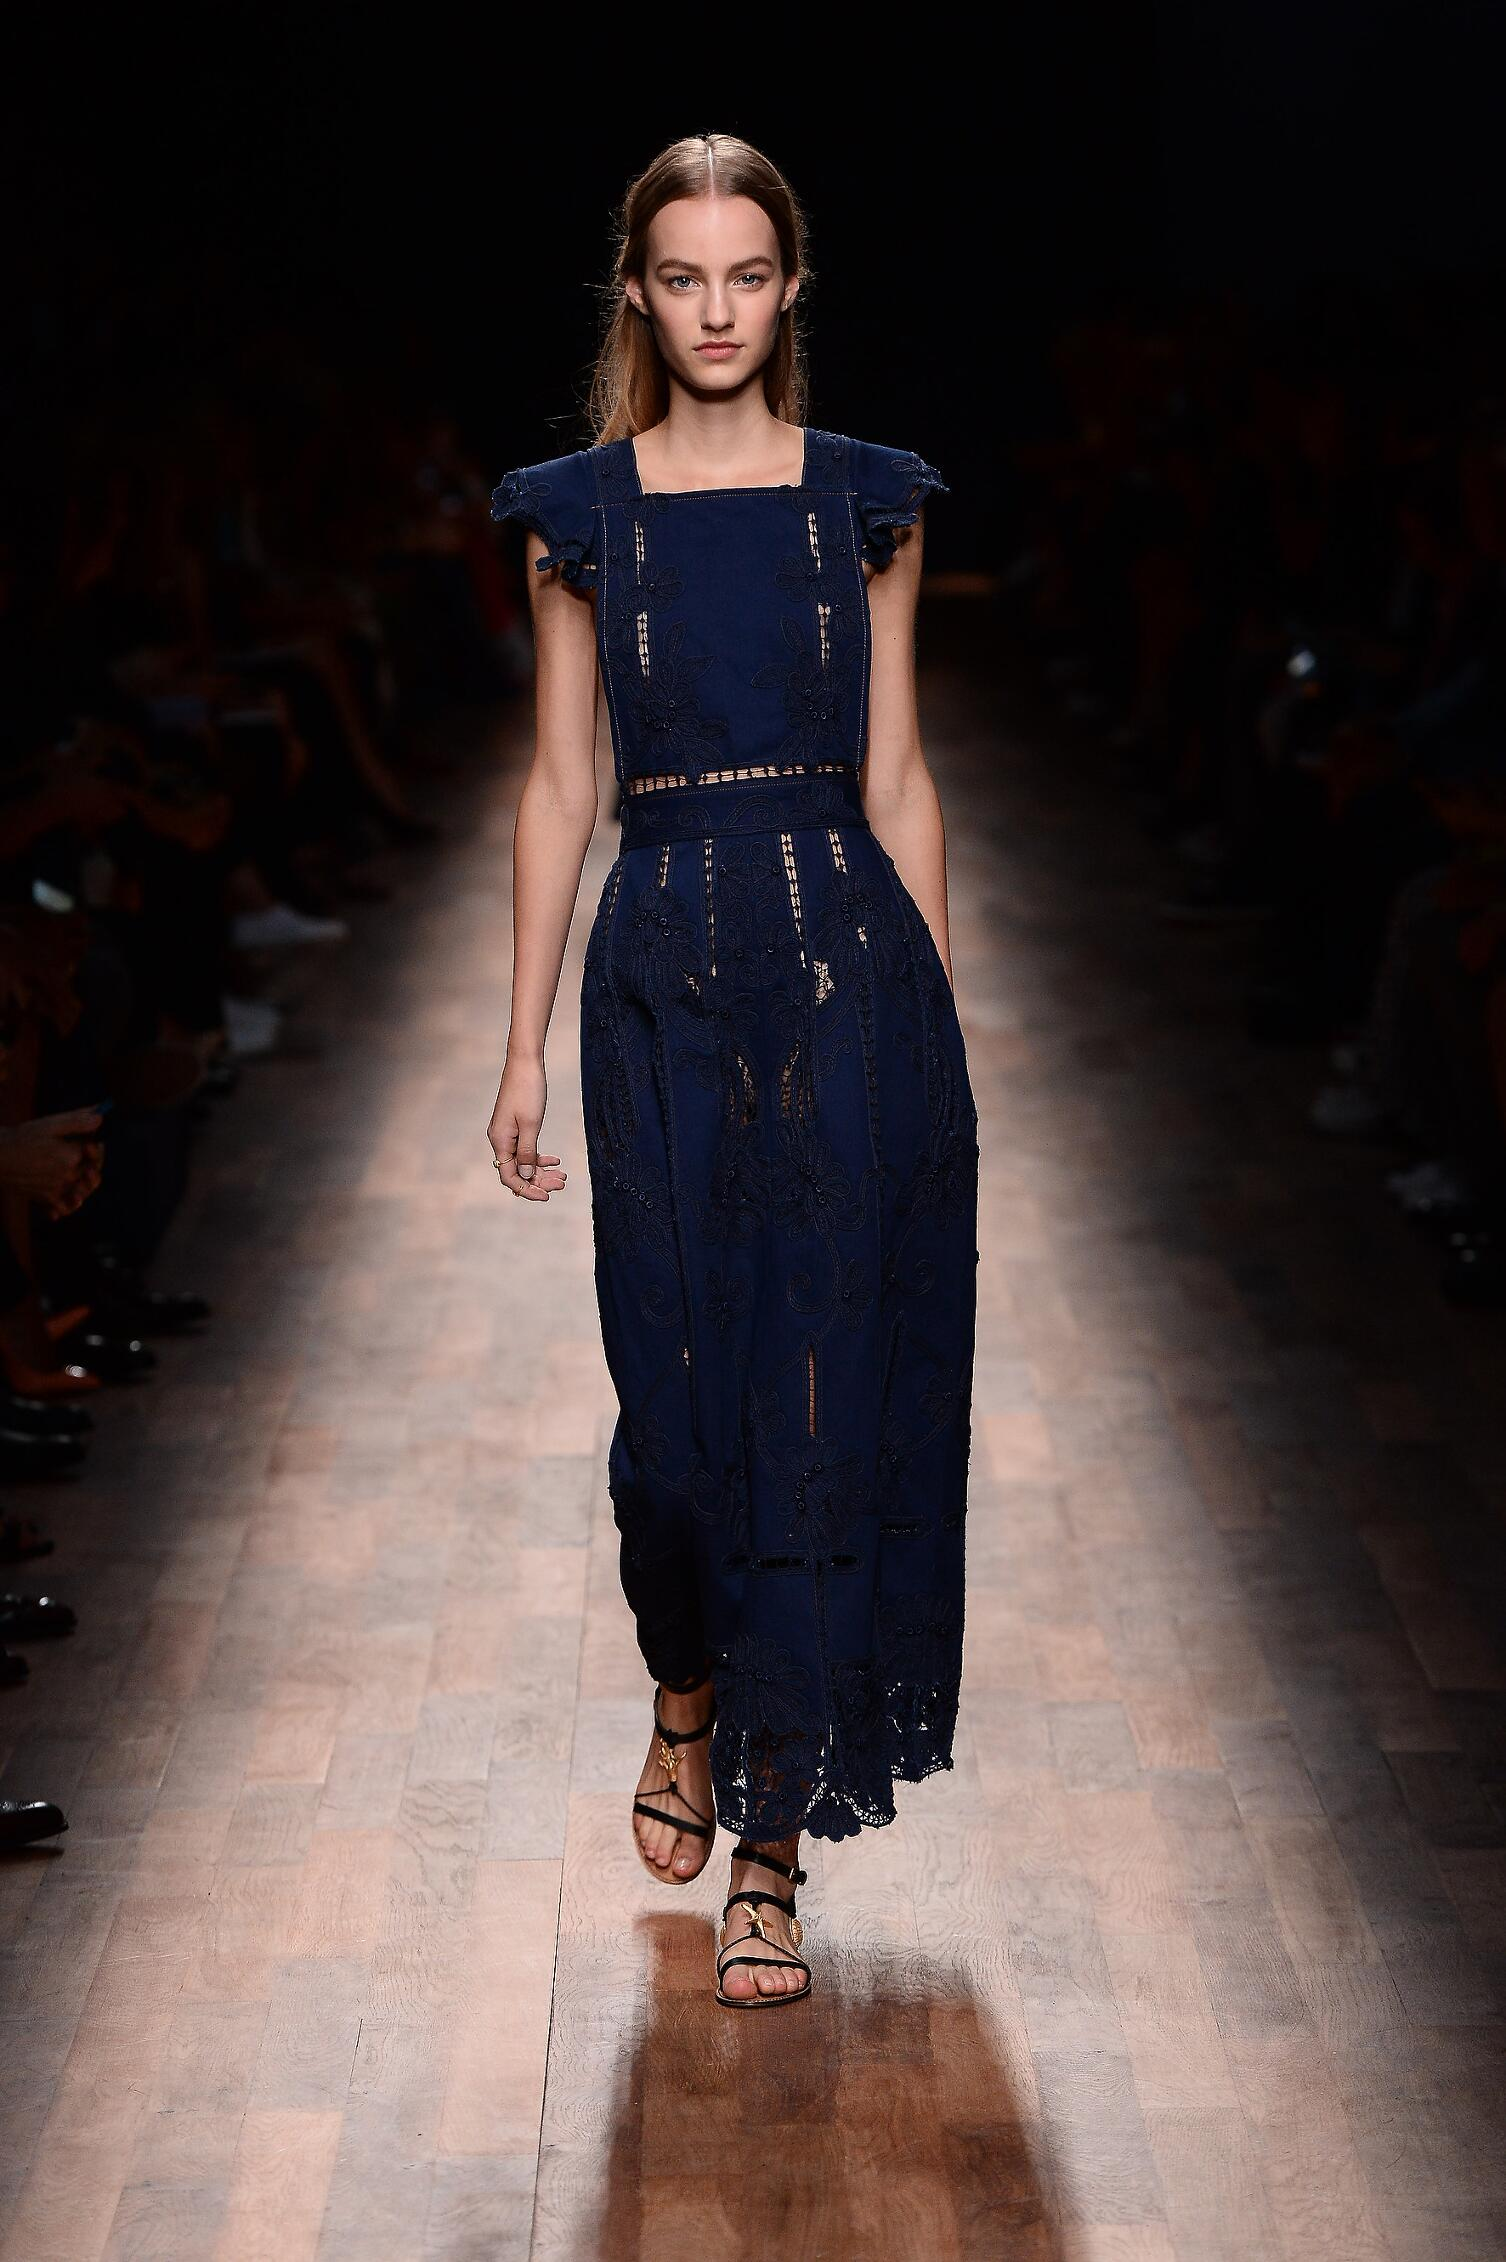 Spring 2015 Woman Fashion Show Valentino